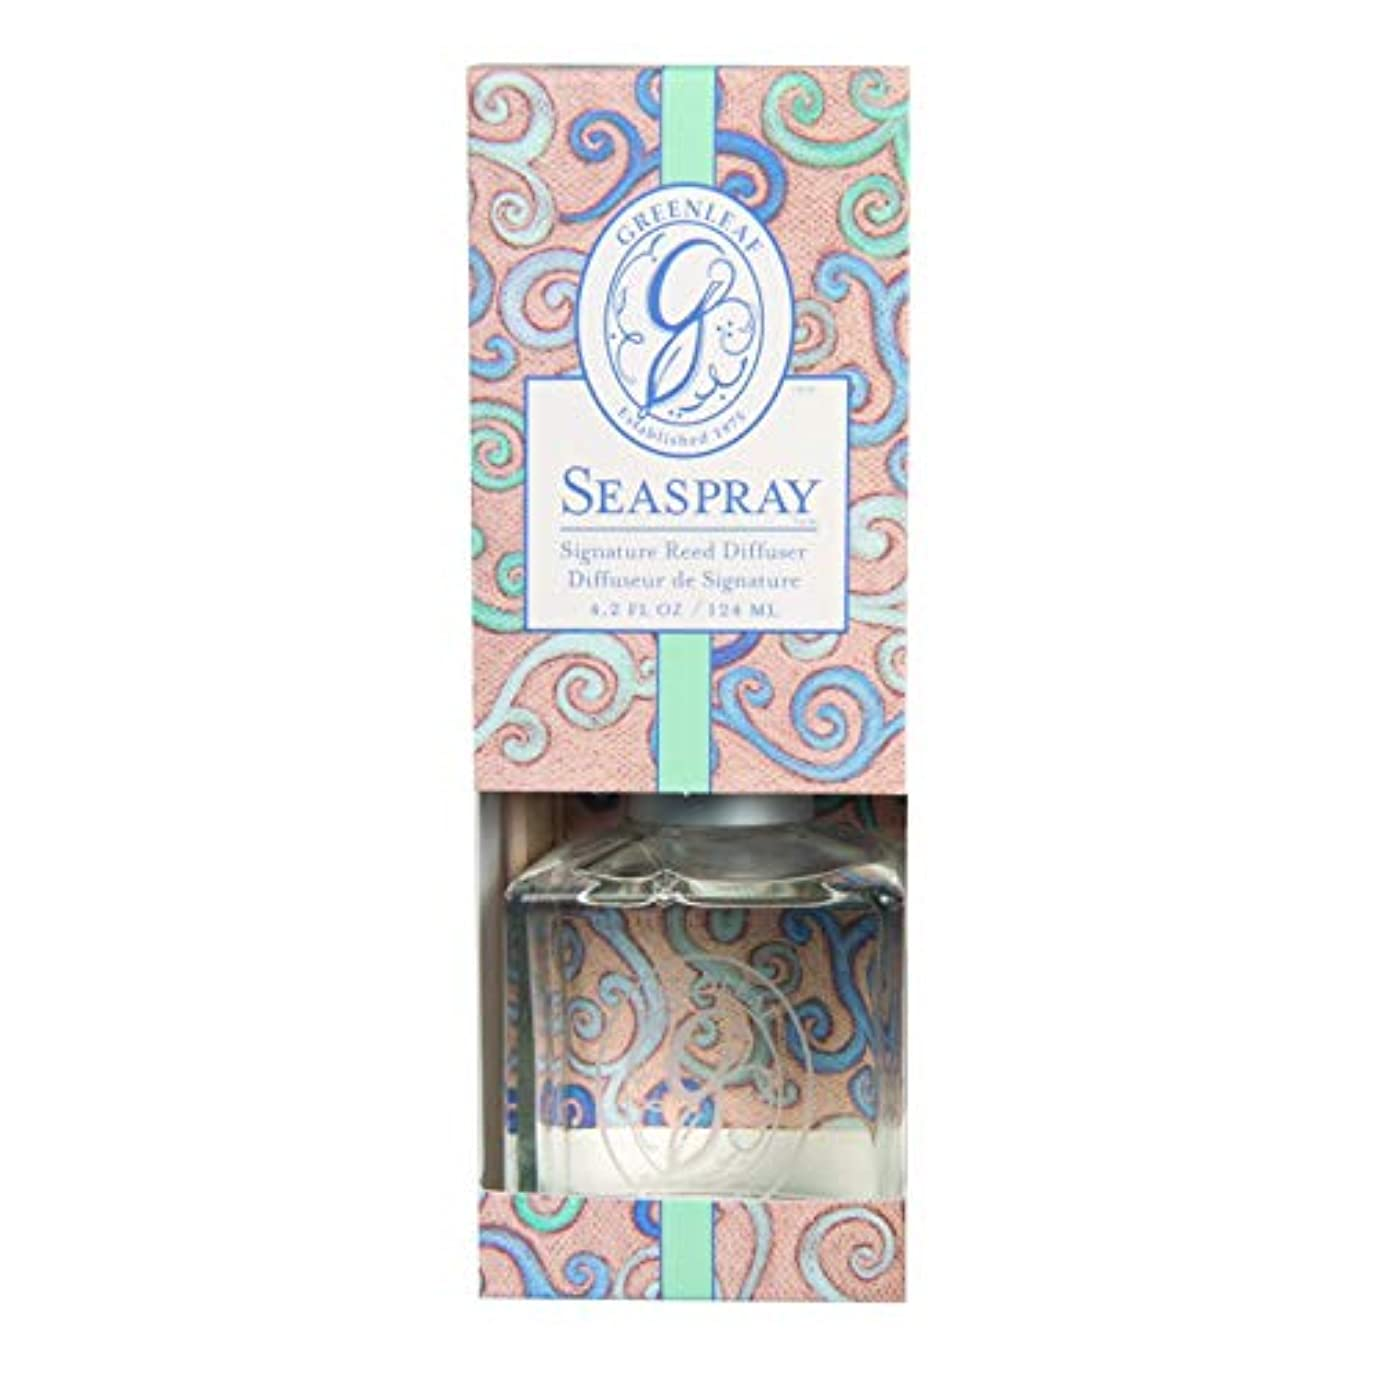 GREENLEAF REED DIFFUSER SEA SPRAY